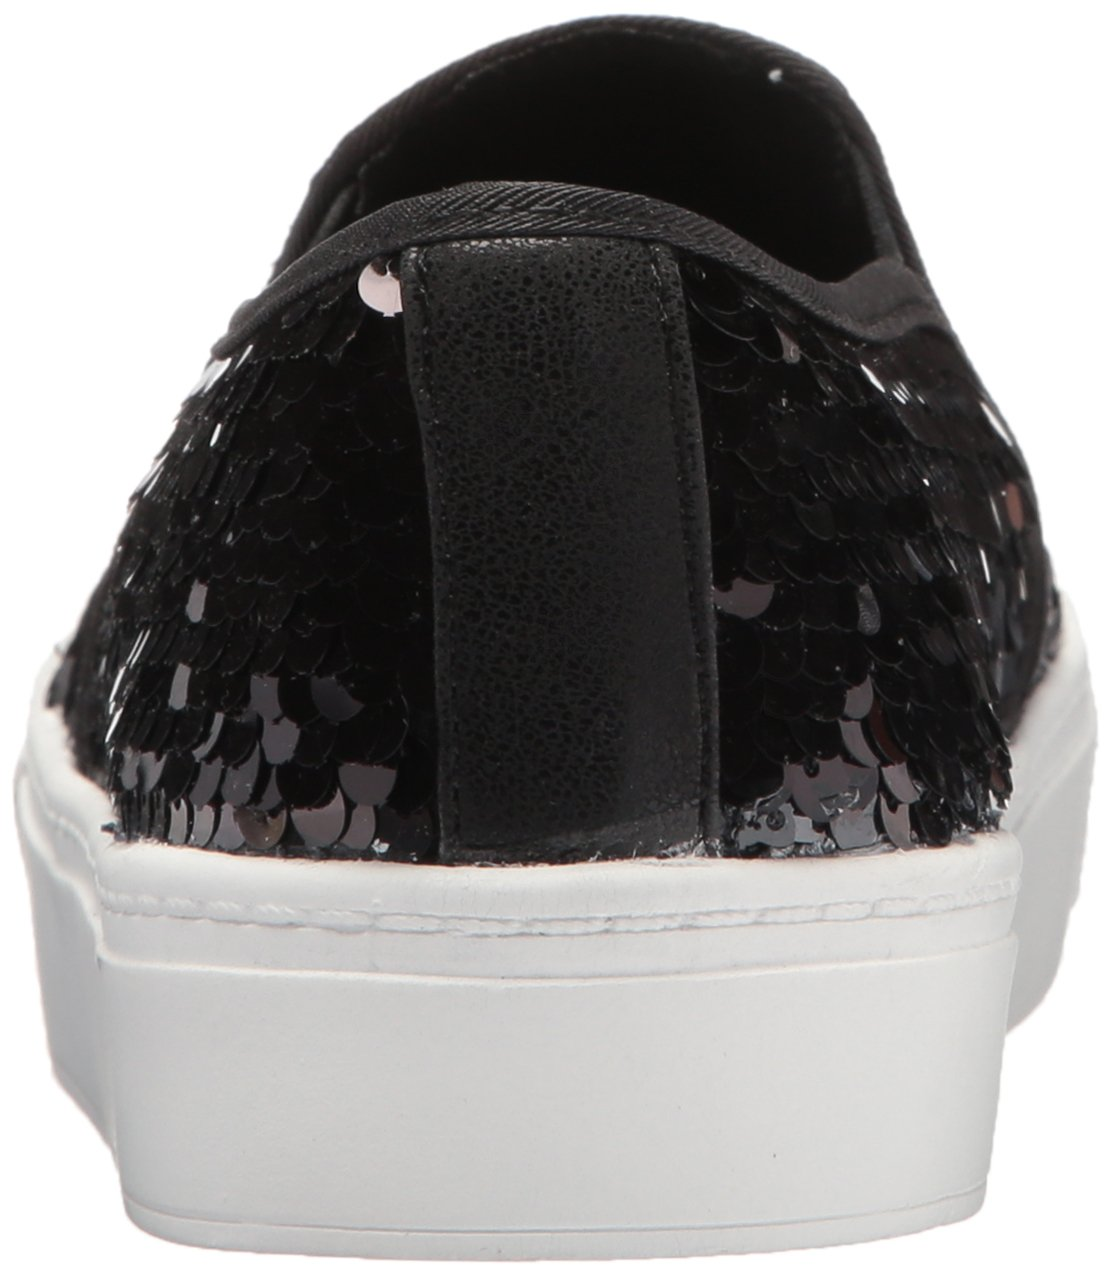 Dirty Laundry by Chinese Laundry Women's Josephine Sneaker B0731WF5YV 9.5 B(M) US|Black Sequins